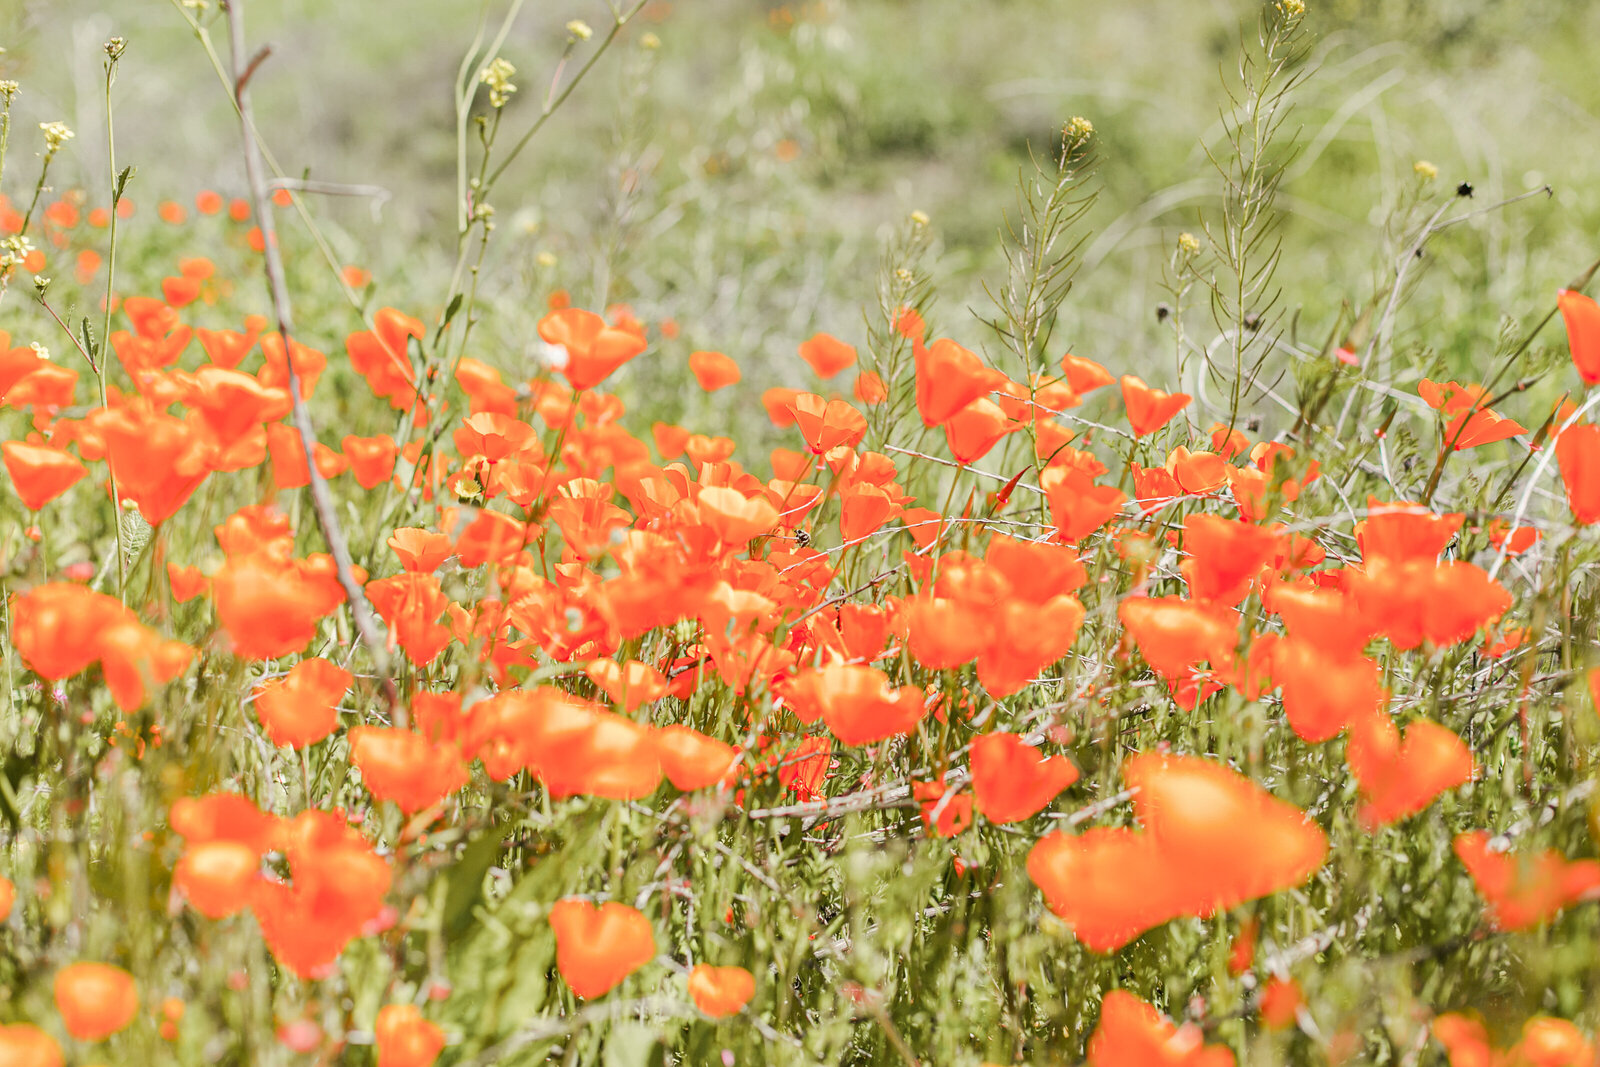 052-KBP-superbloom-Poppy-Fields-001